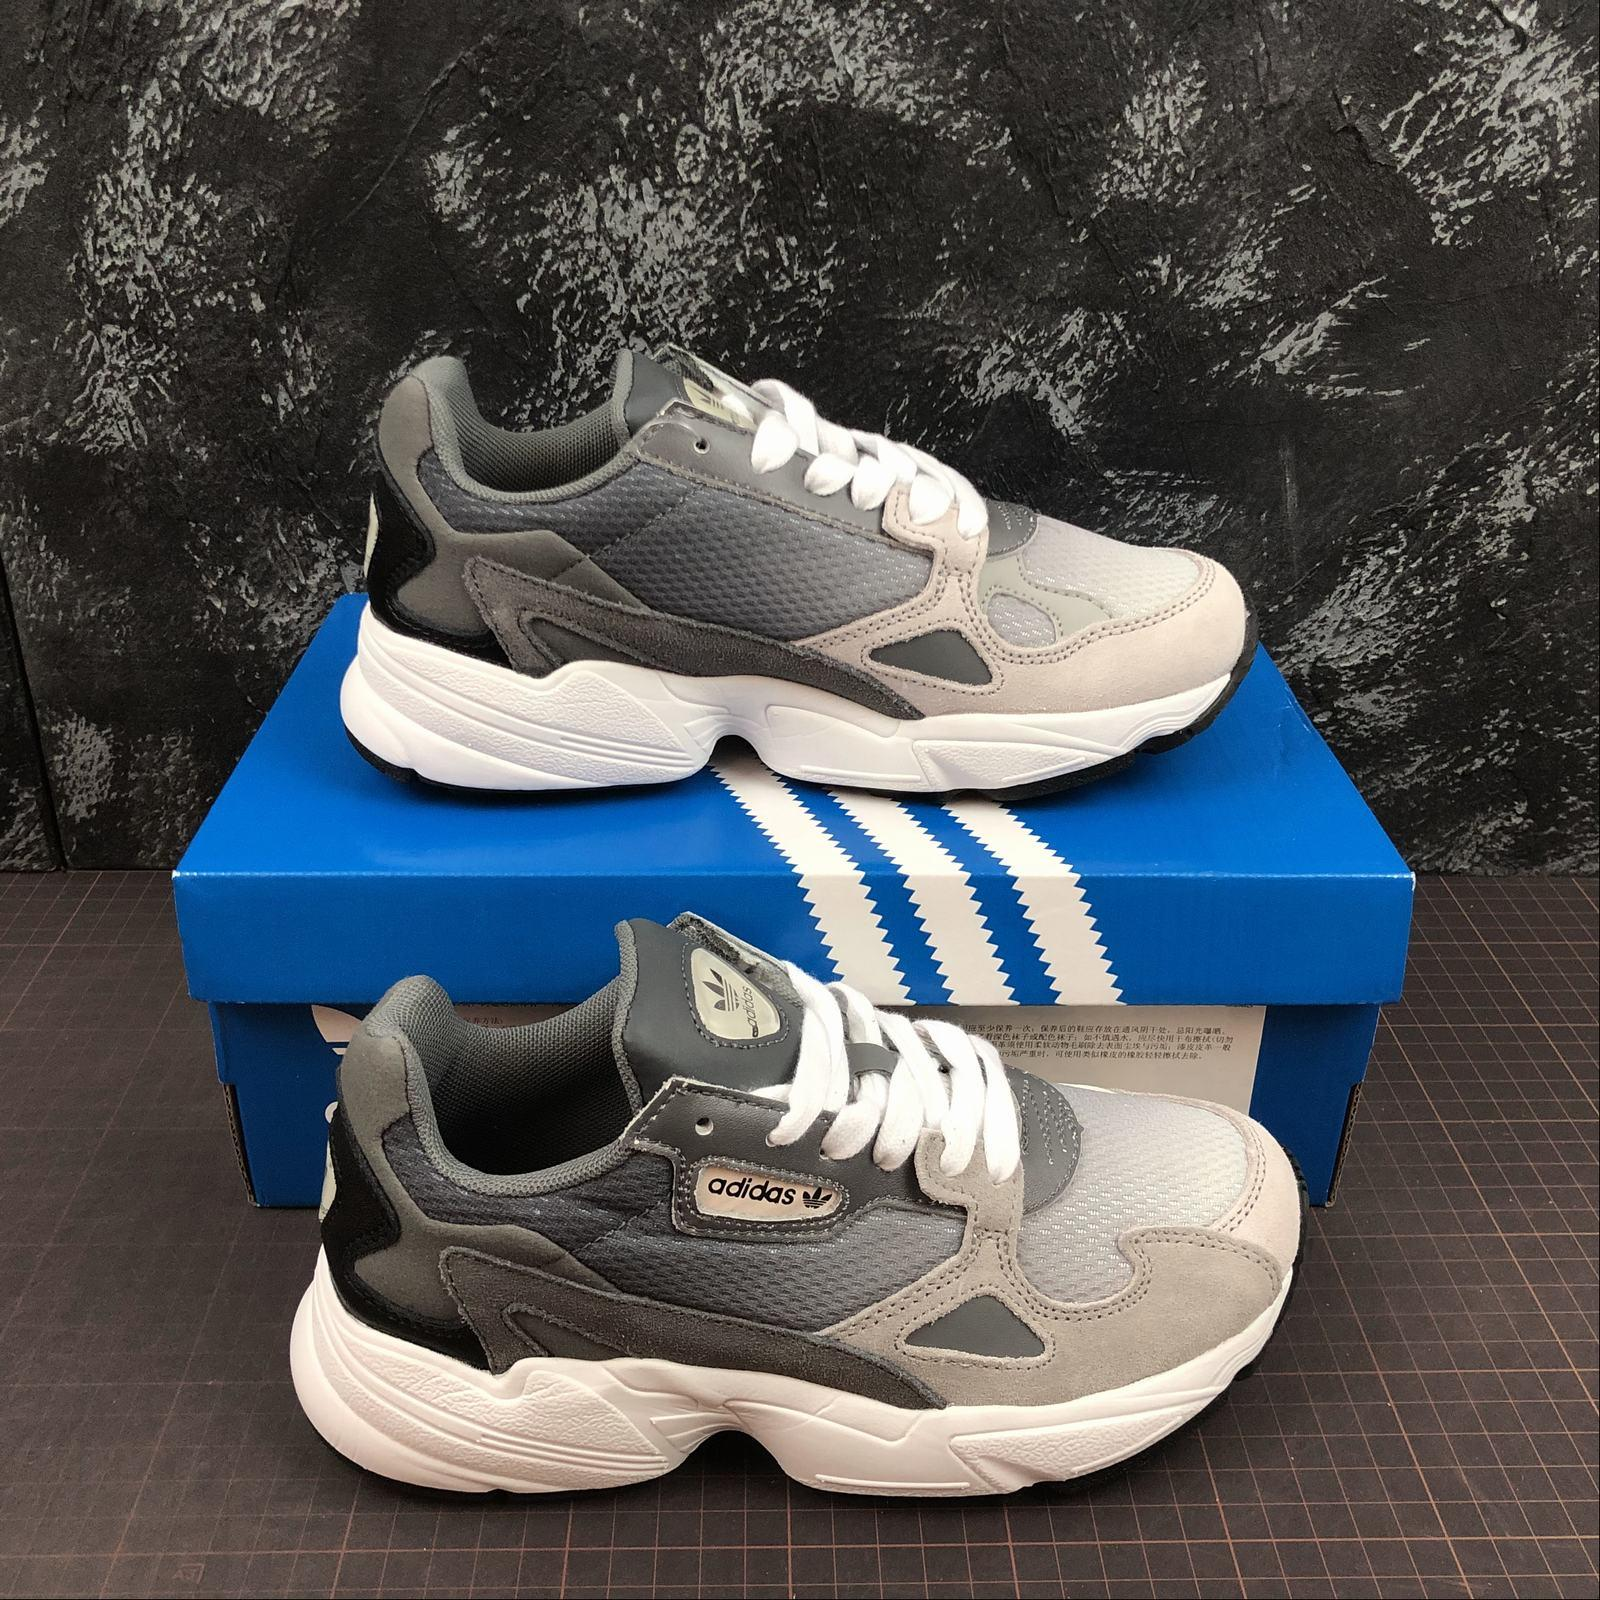 2019 New Adidas Falcon W  cheap shoes top quality adidas shoes sport shoes